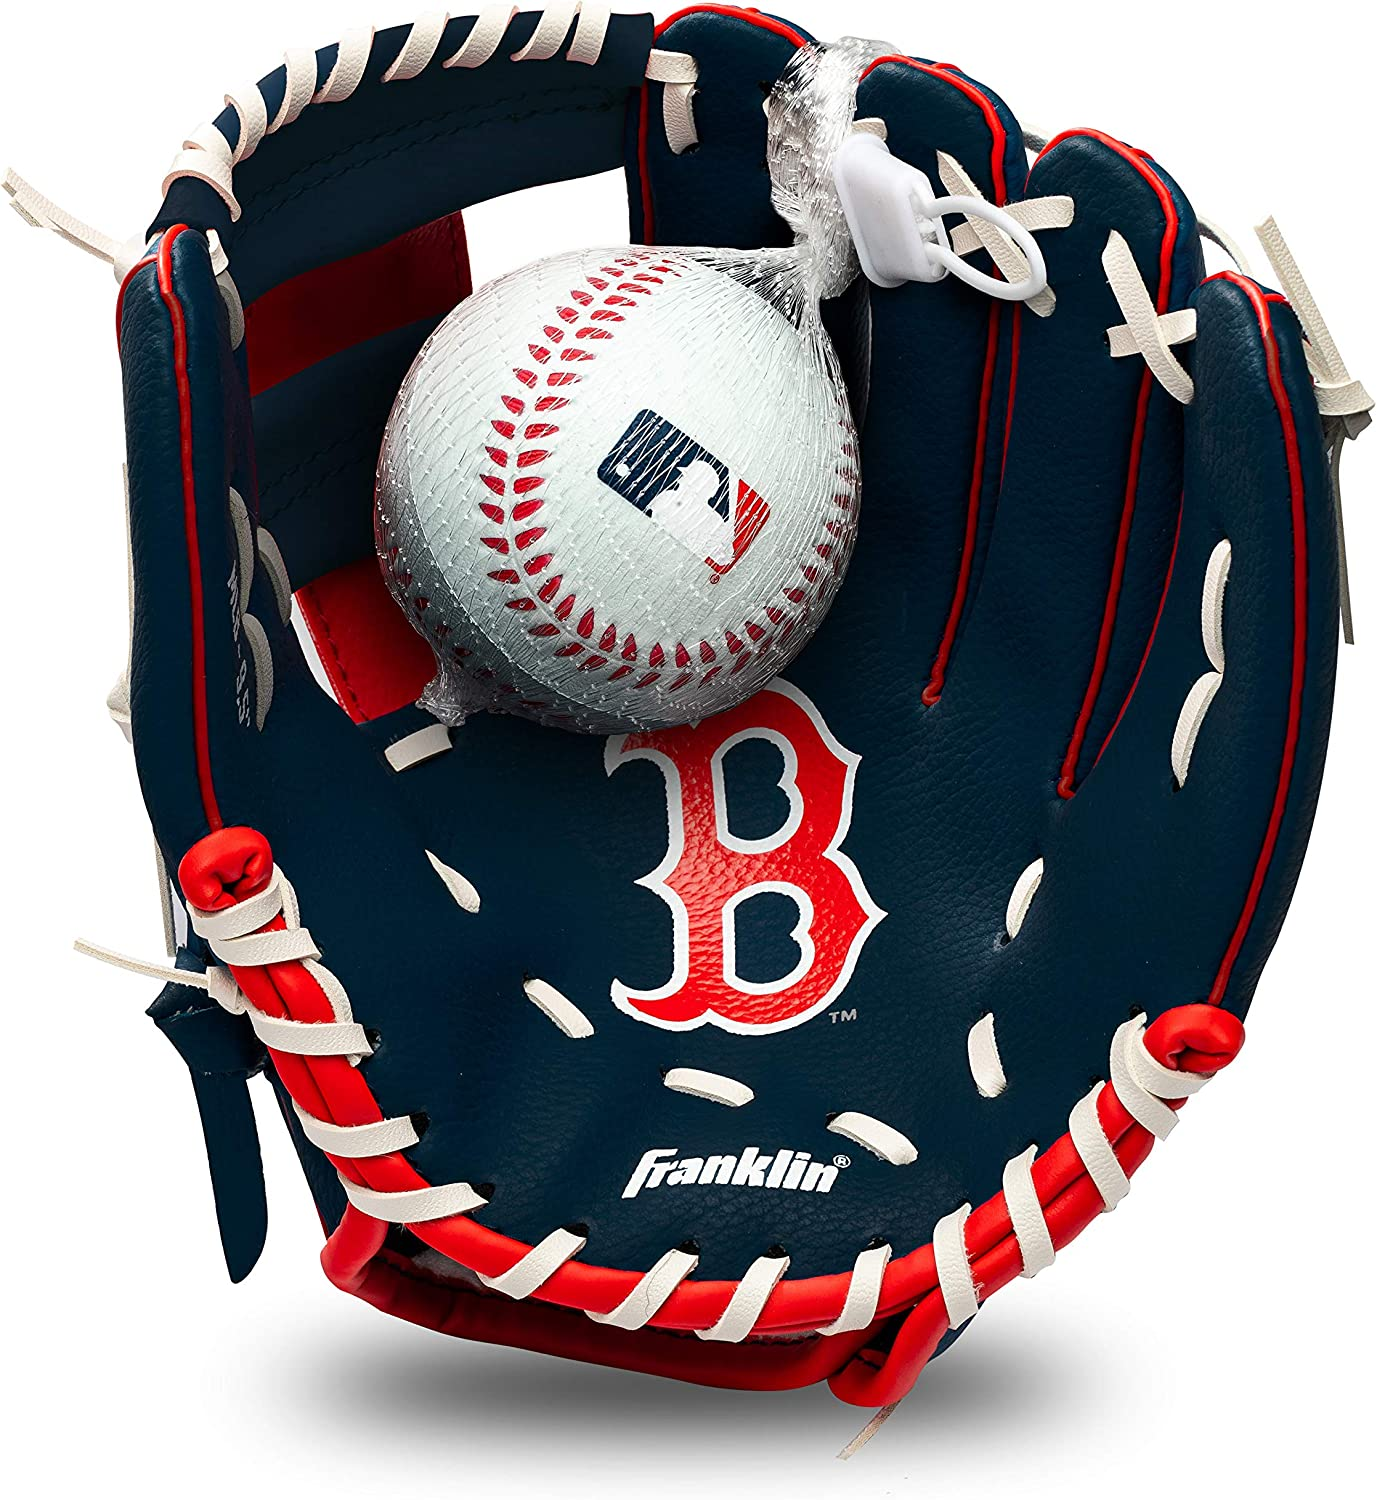 Franklin Sports MLB Youth Teeball Glove Base Kids and Ball - Super beauty product restock quality top! Set 35% OFF